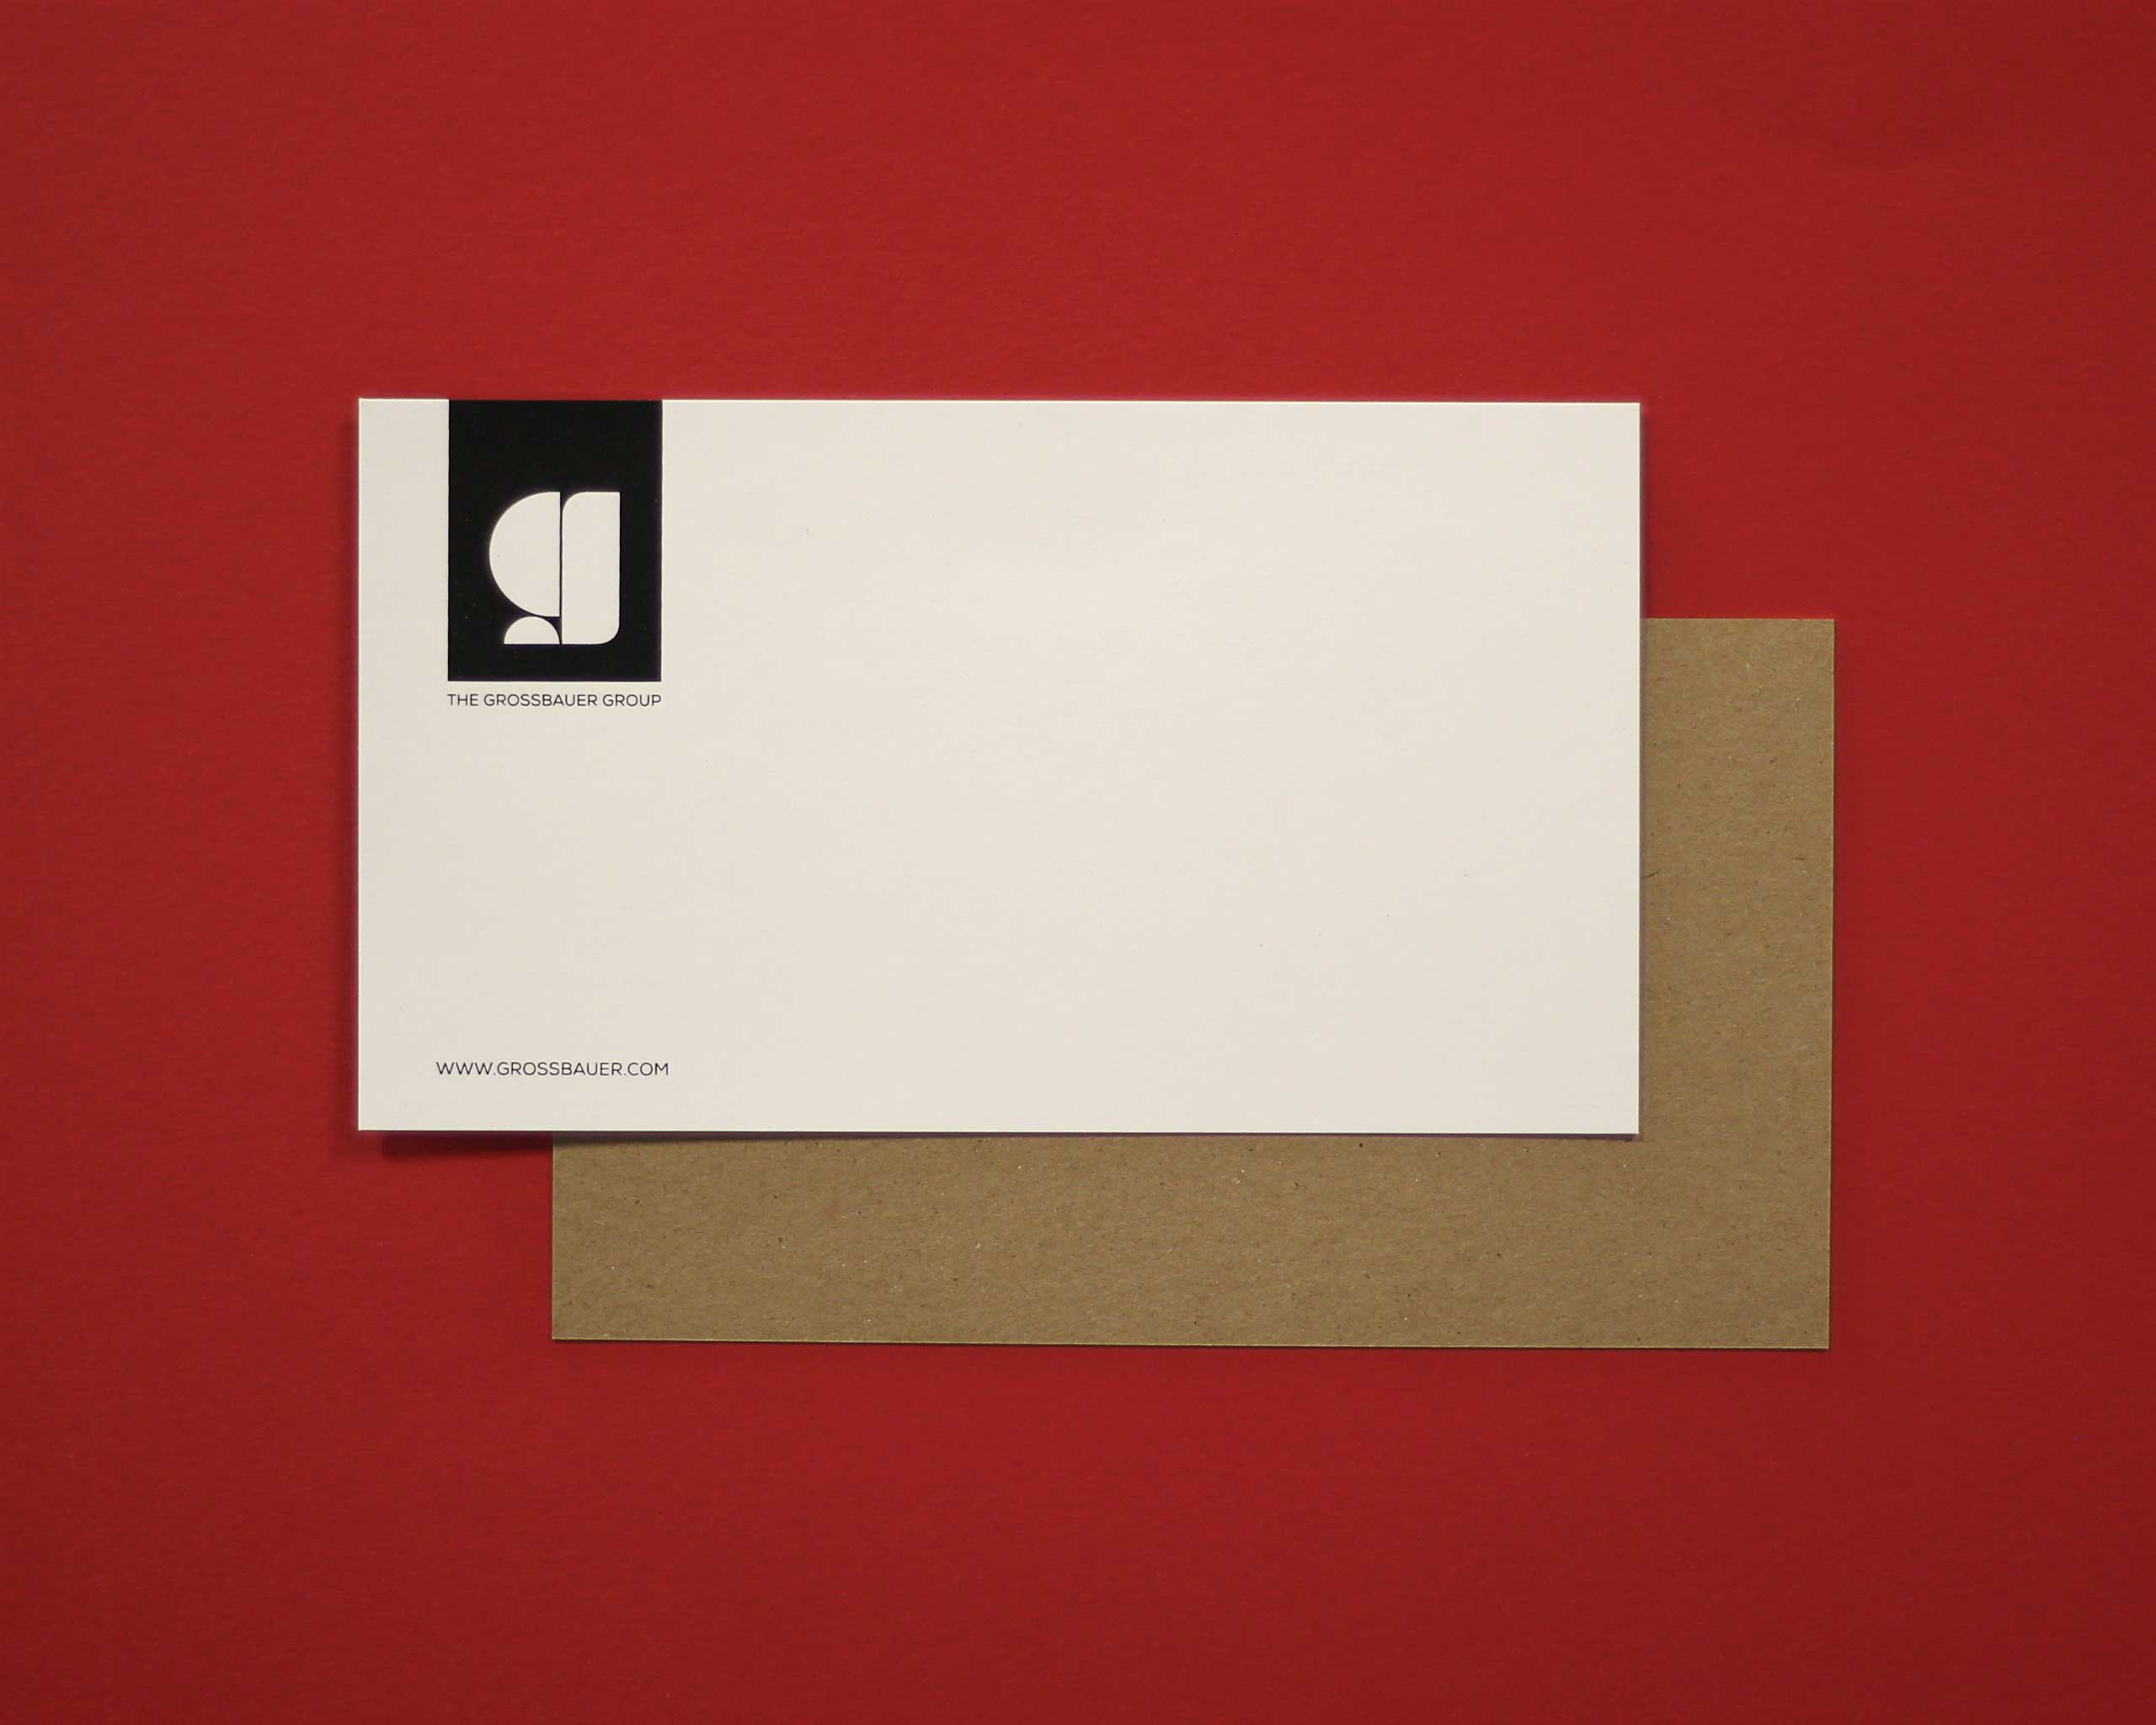 Grossbauer Group screen printed business cards